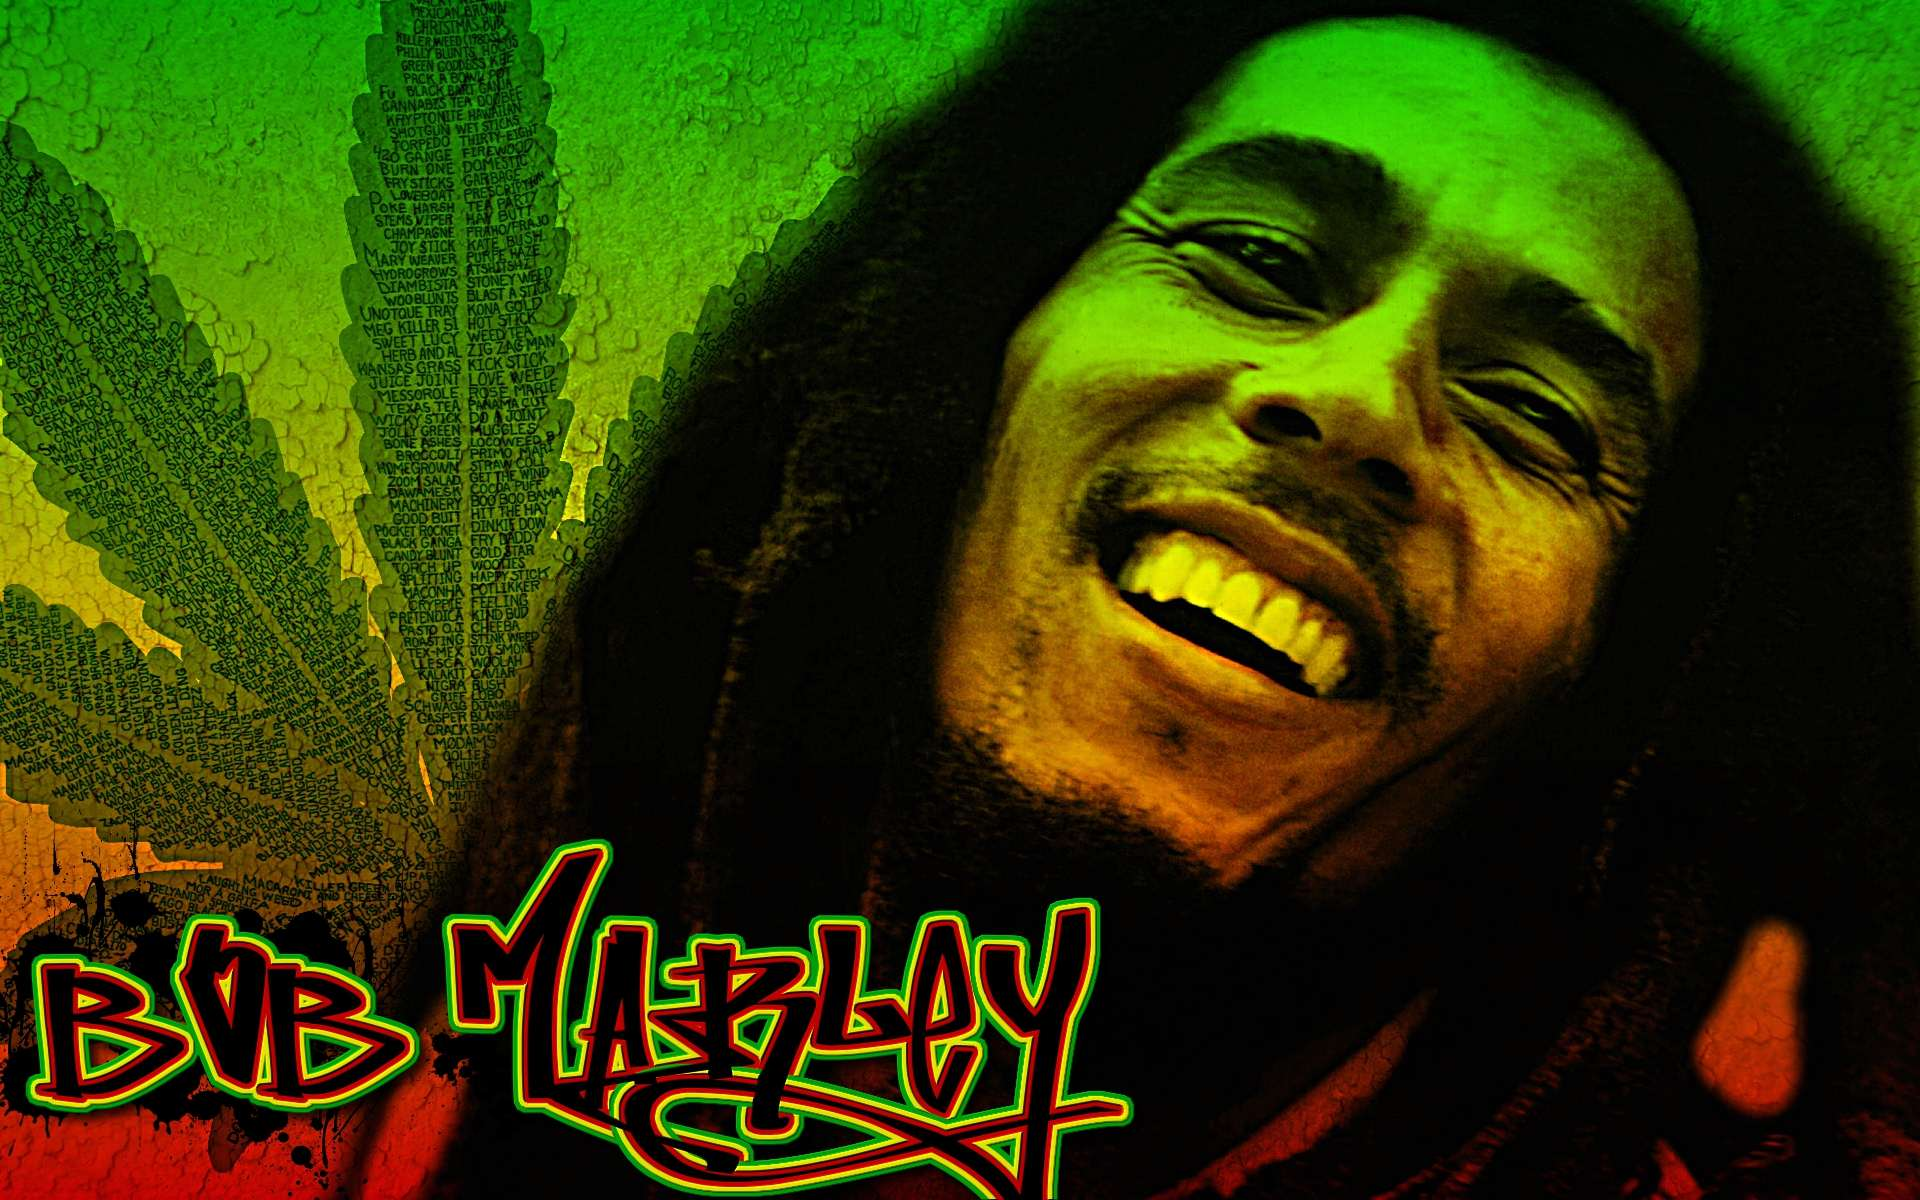 Bob Marley Wallpapers HD Best Collection Free Download